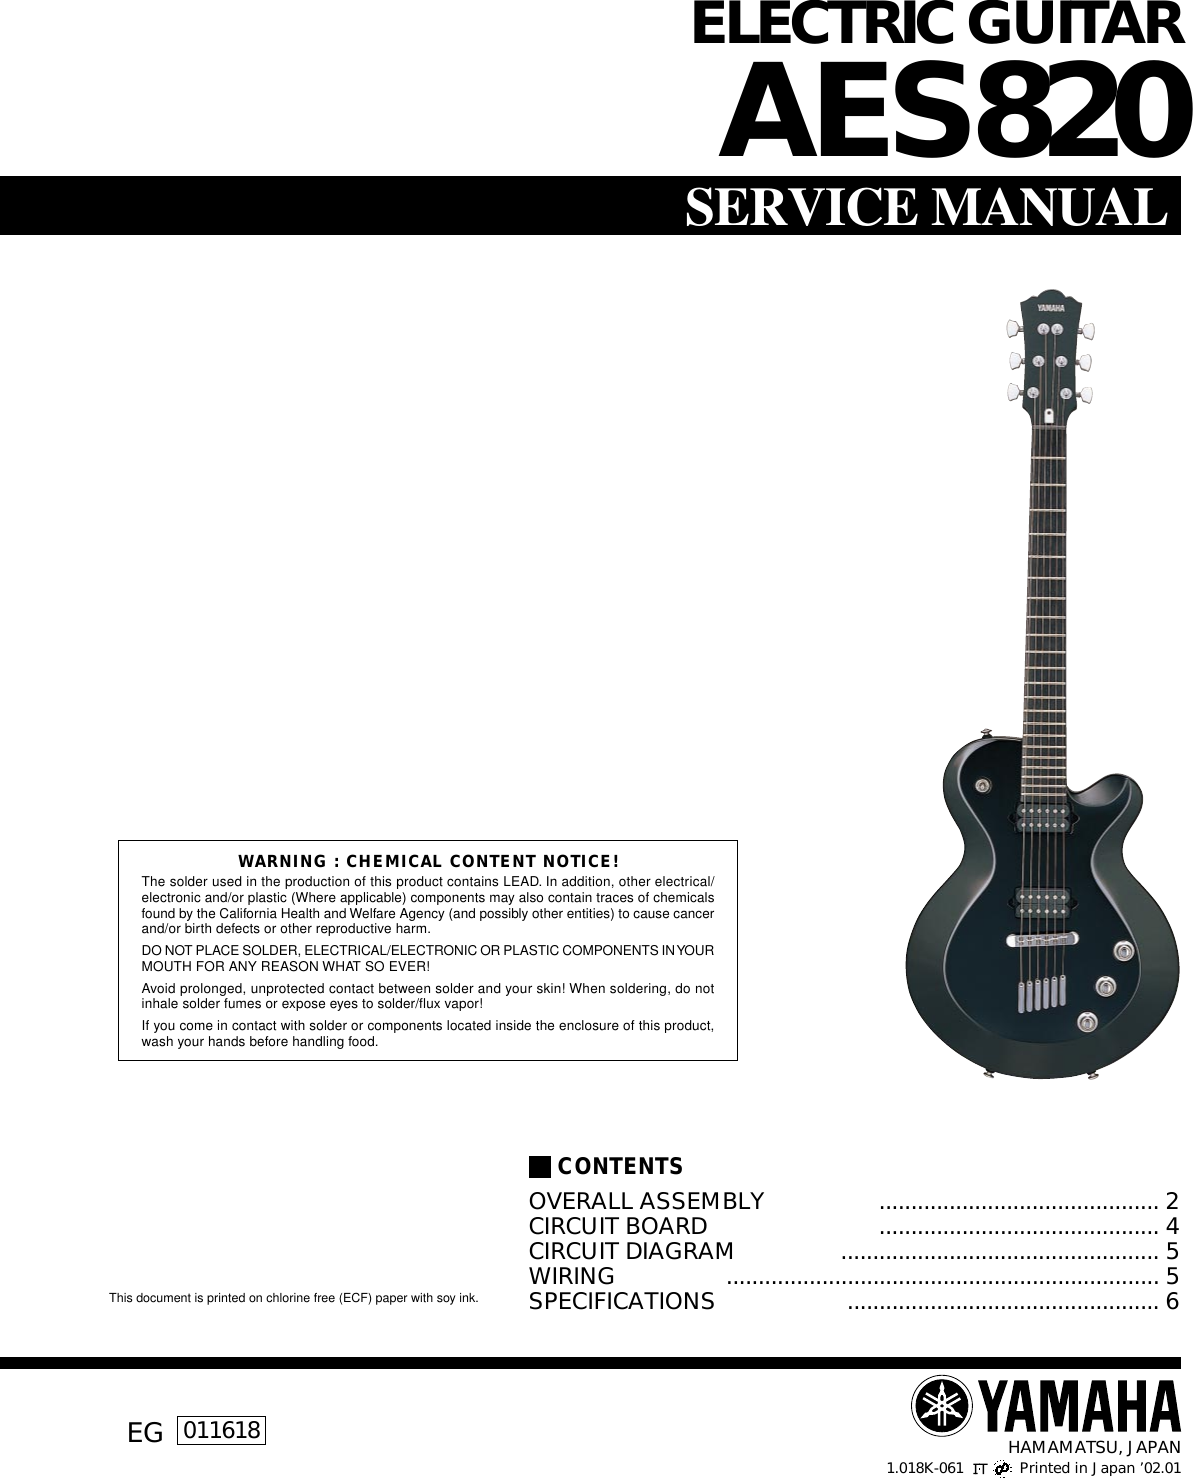 Yamaha Guitar Aes820 Users Manual Electric B Wiring Diagram